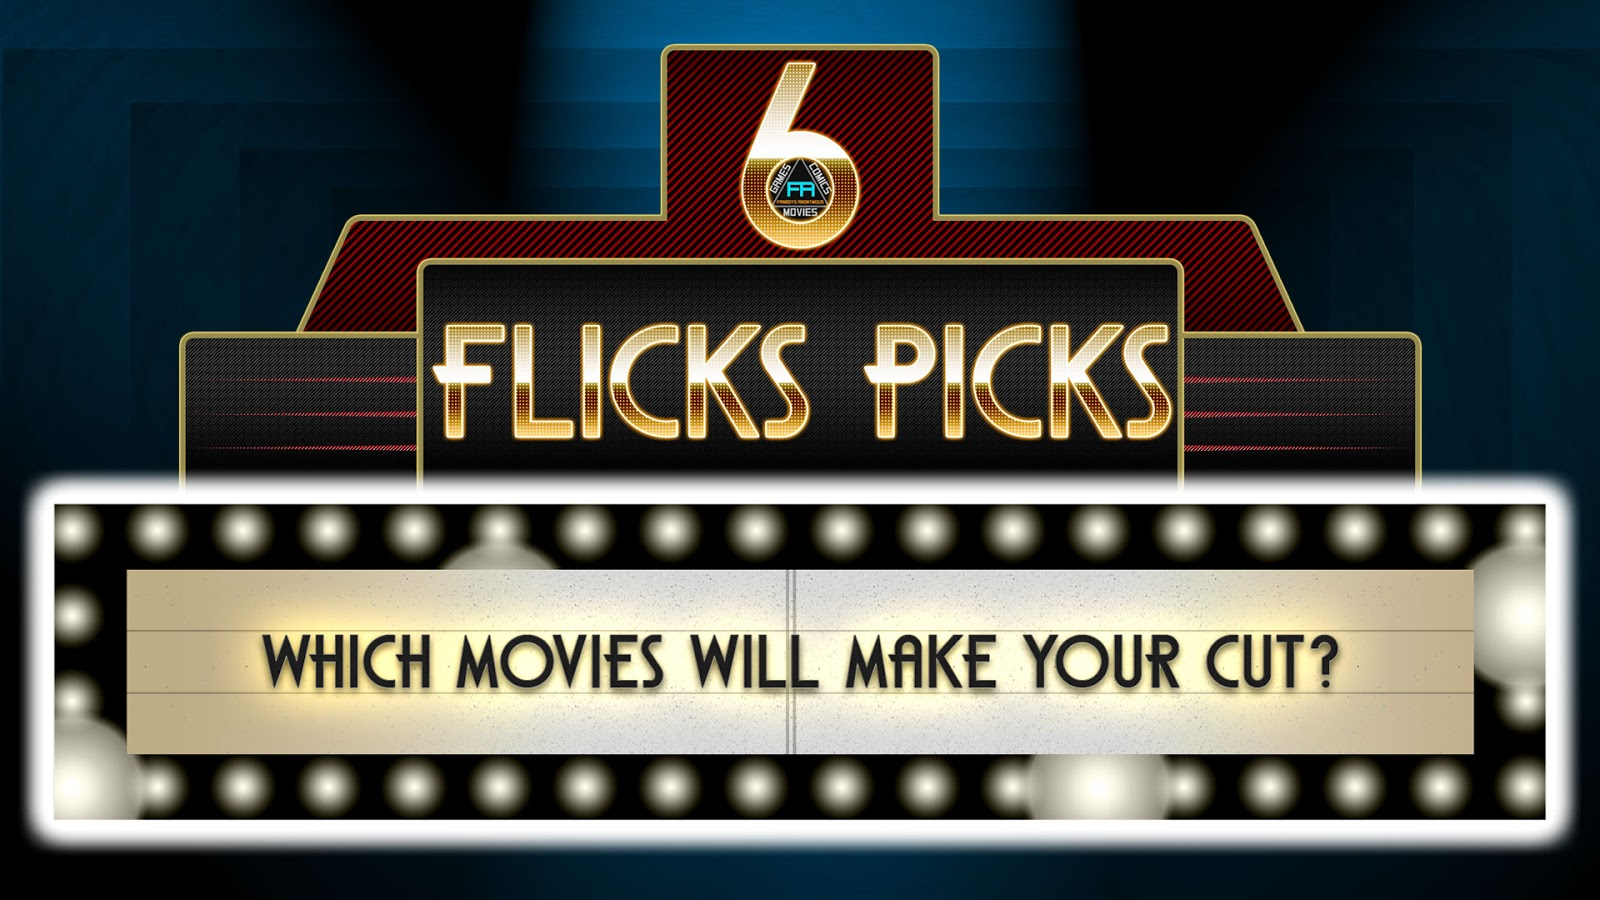 What movies are coming out October 2016 6 Flicks Picks